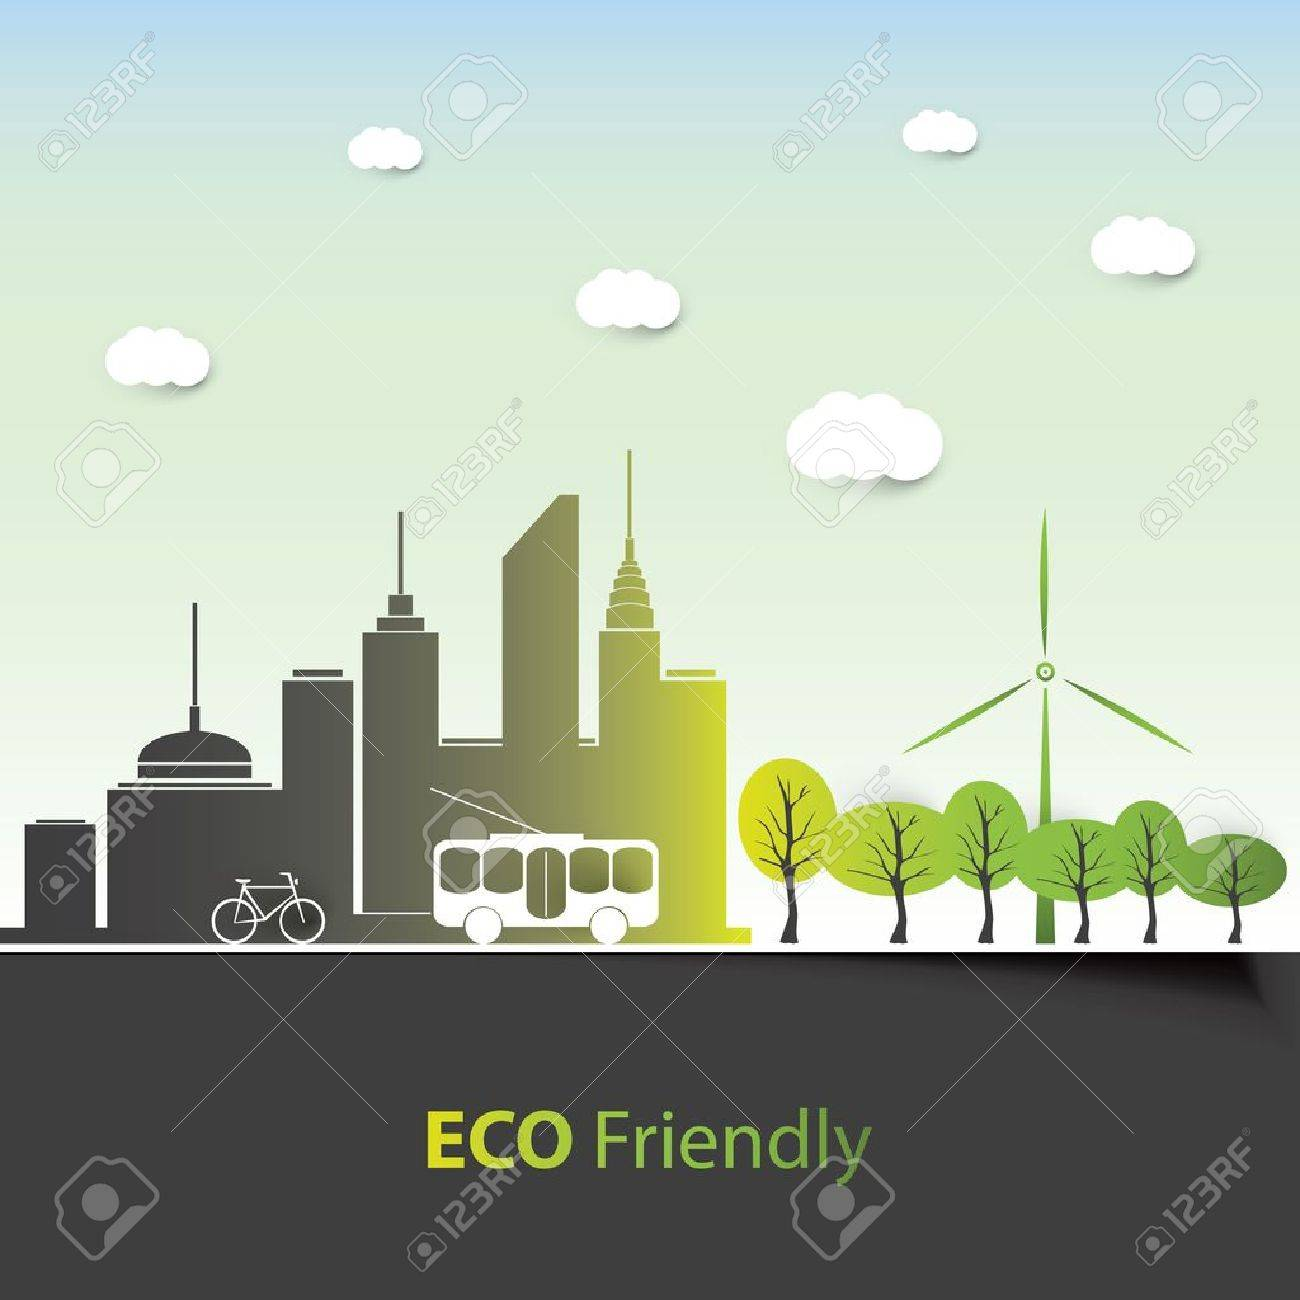 Eco Friendly - Background Design Stock Vector - 21584609